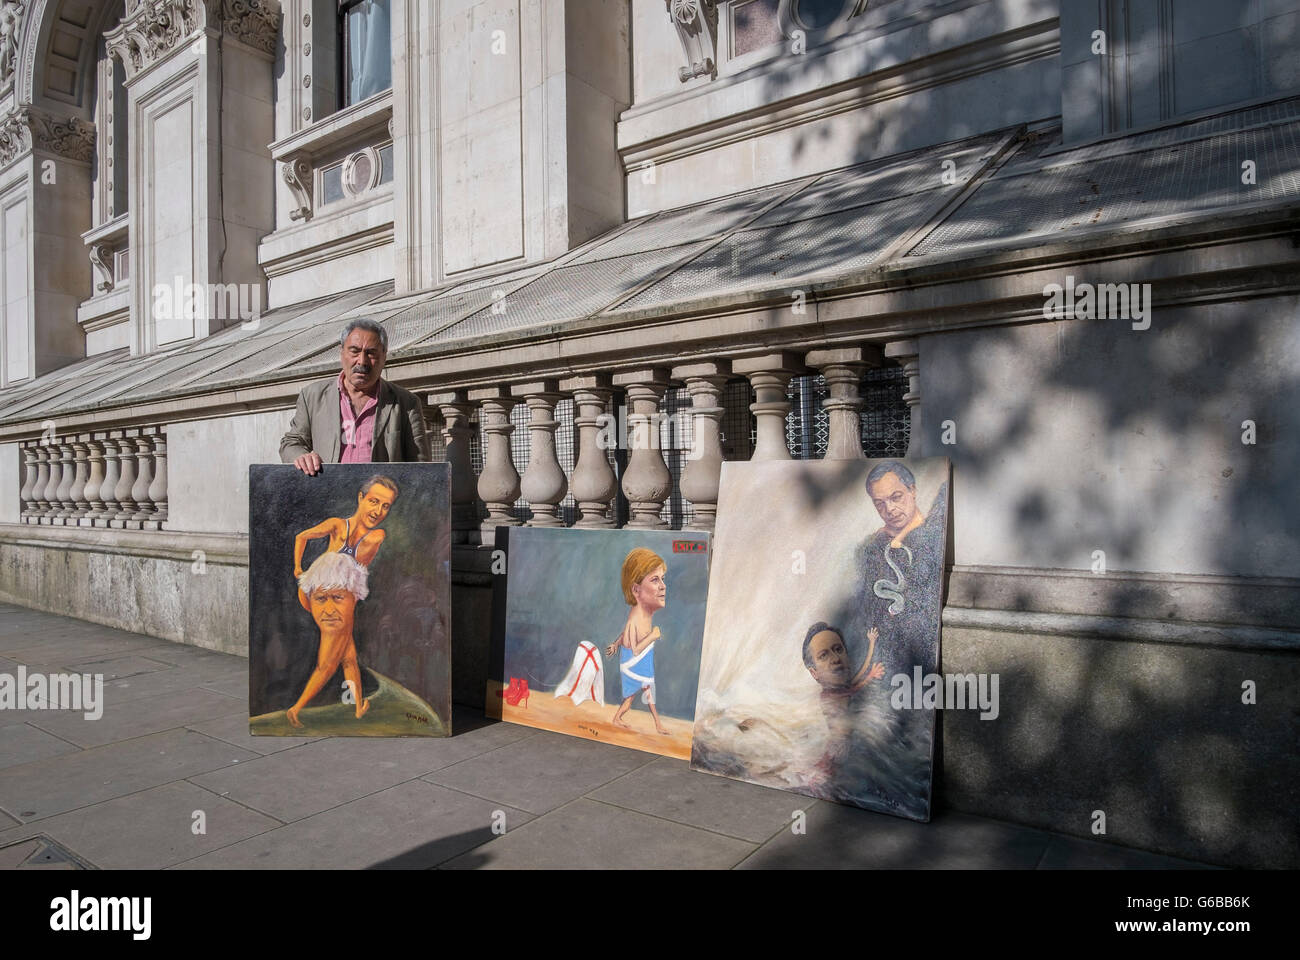 Whitehall, London, UK. 24th June 2016. Artist with political canvases plies his wares outside Downing Street in - Stock Image